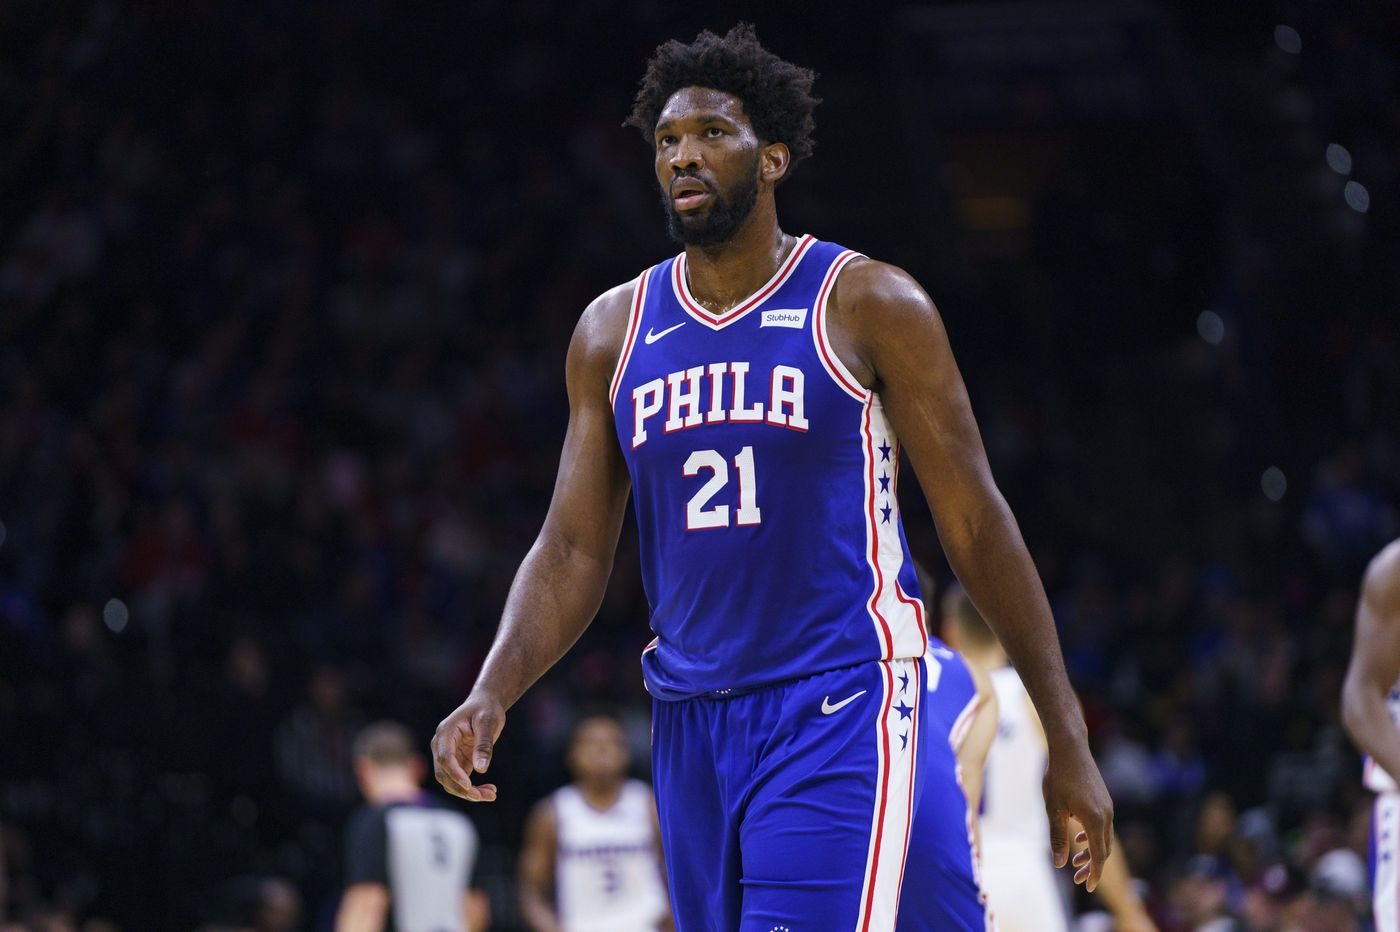 Sixers' center Joel Embiid available to play against Indiana Pacers